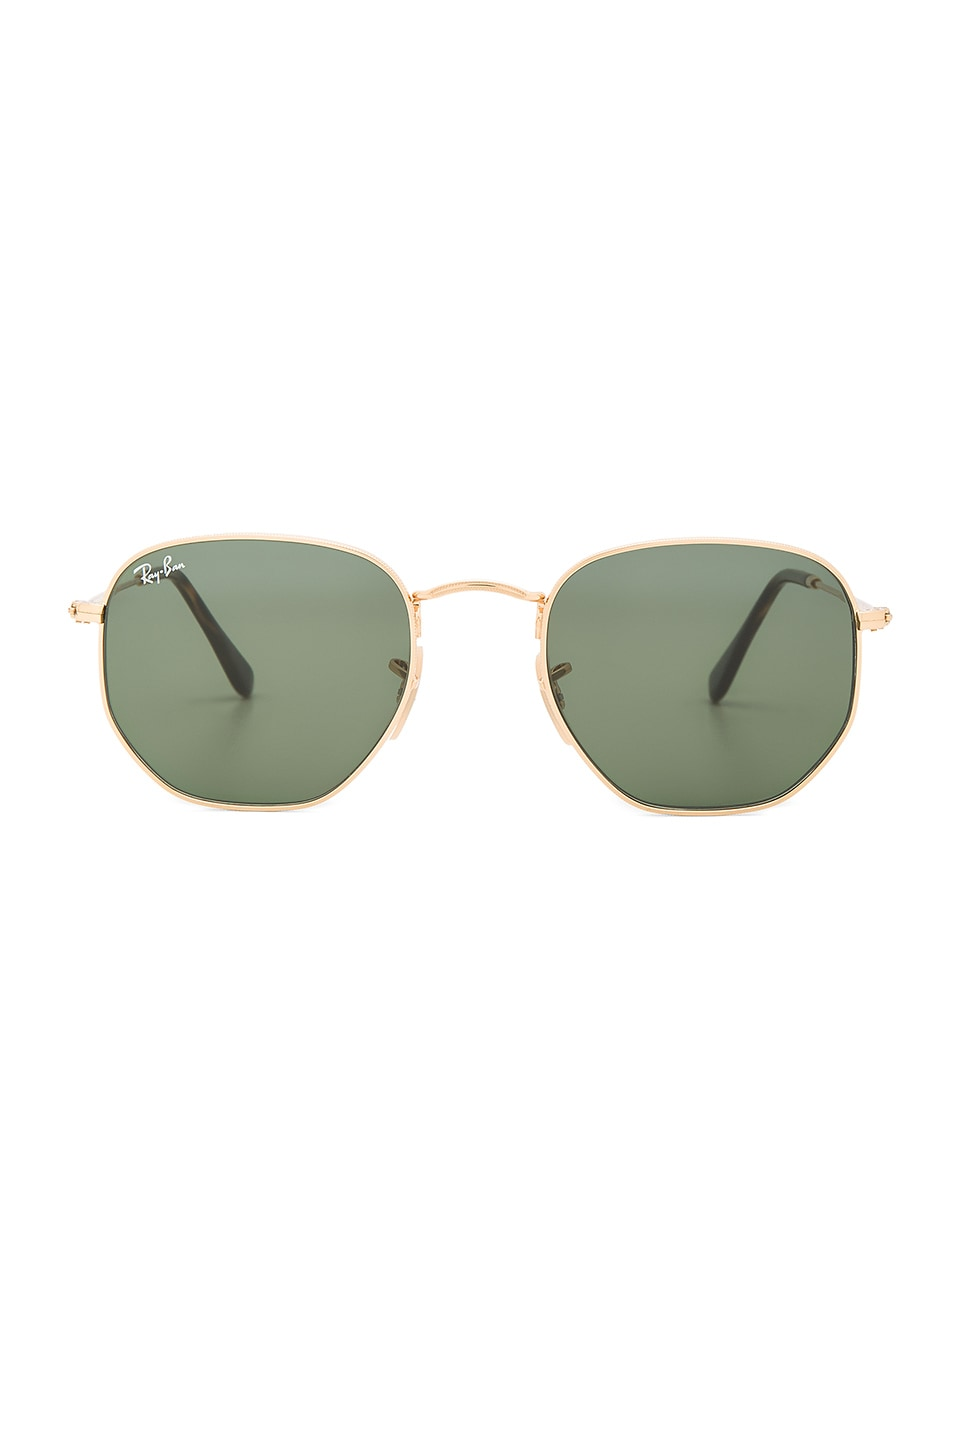 Ray-Ban Hexagonal Flat in Gold & Green Classic